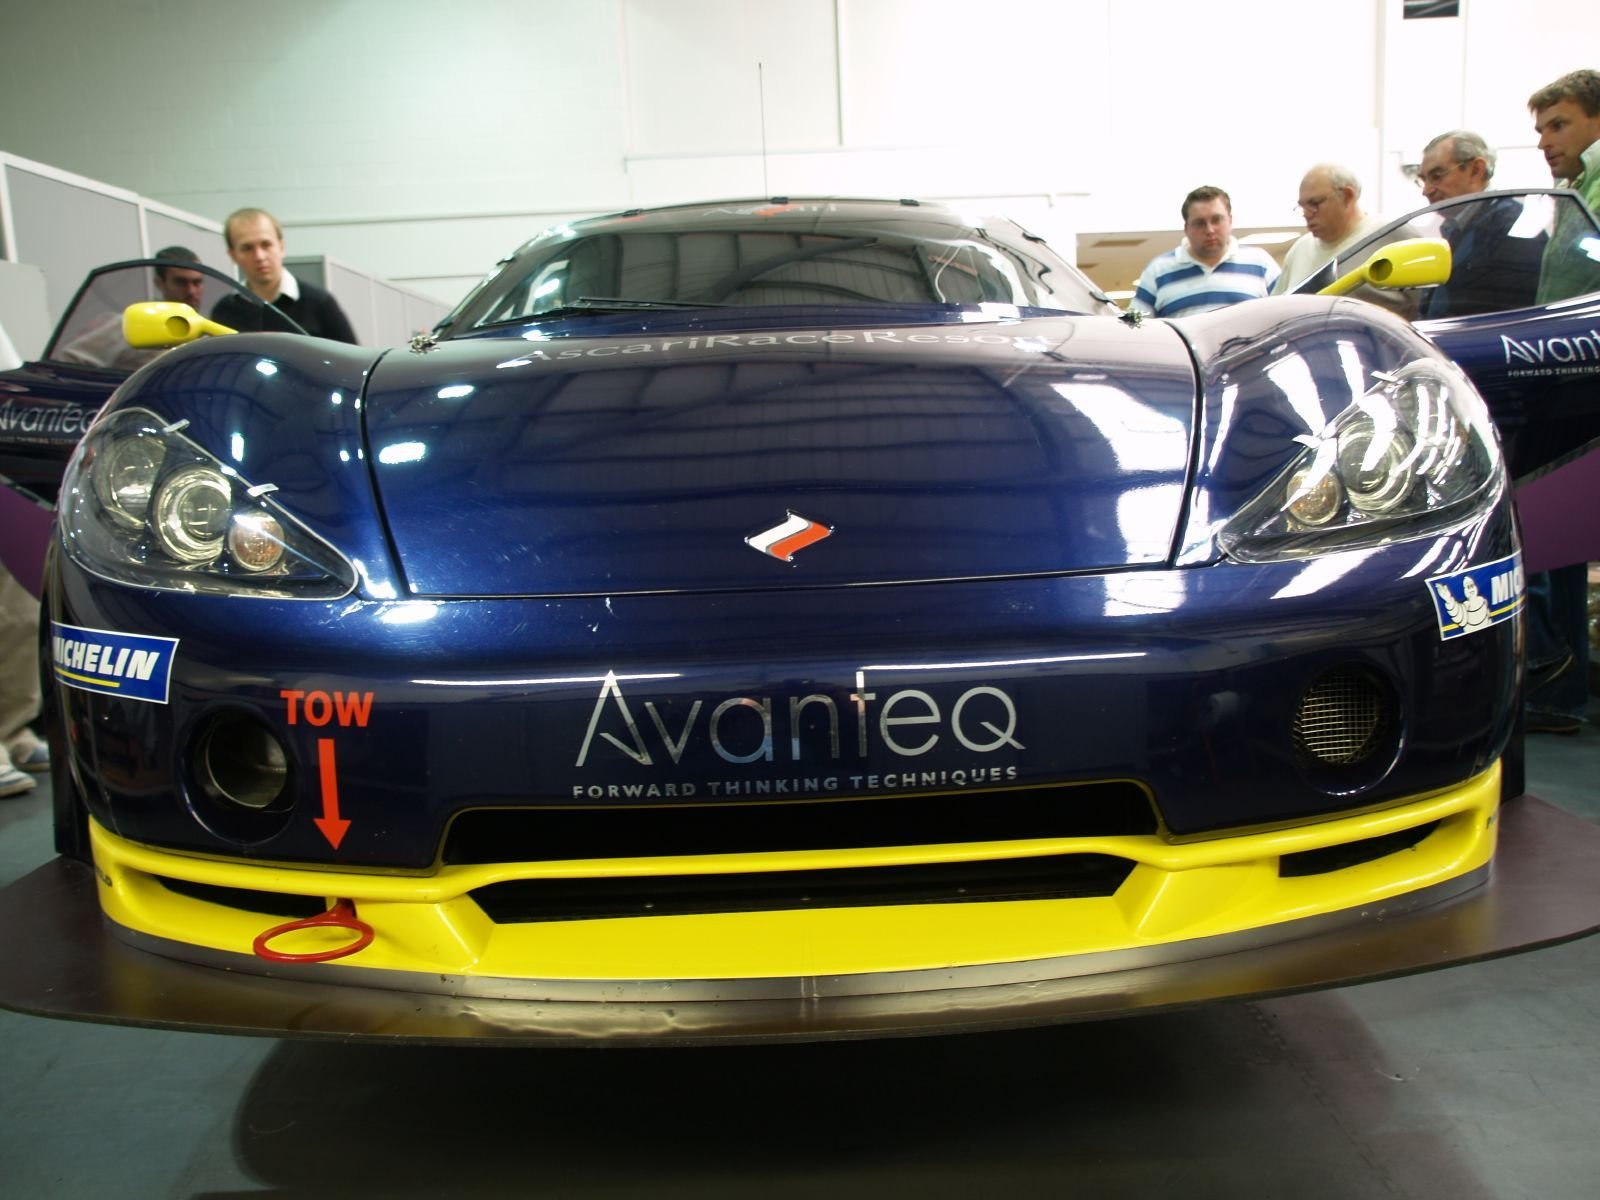 New Ascari The Car Wallpaper Mania Wiki Fandom Powered By On This Month